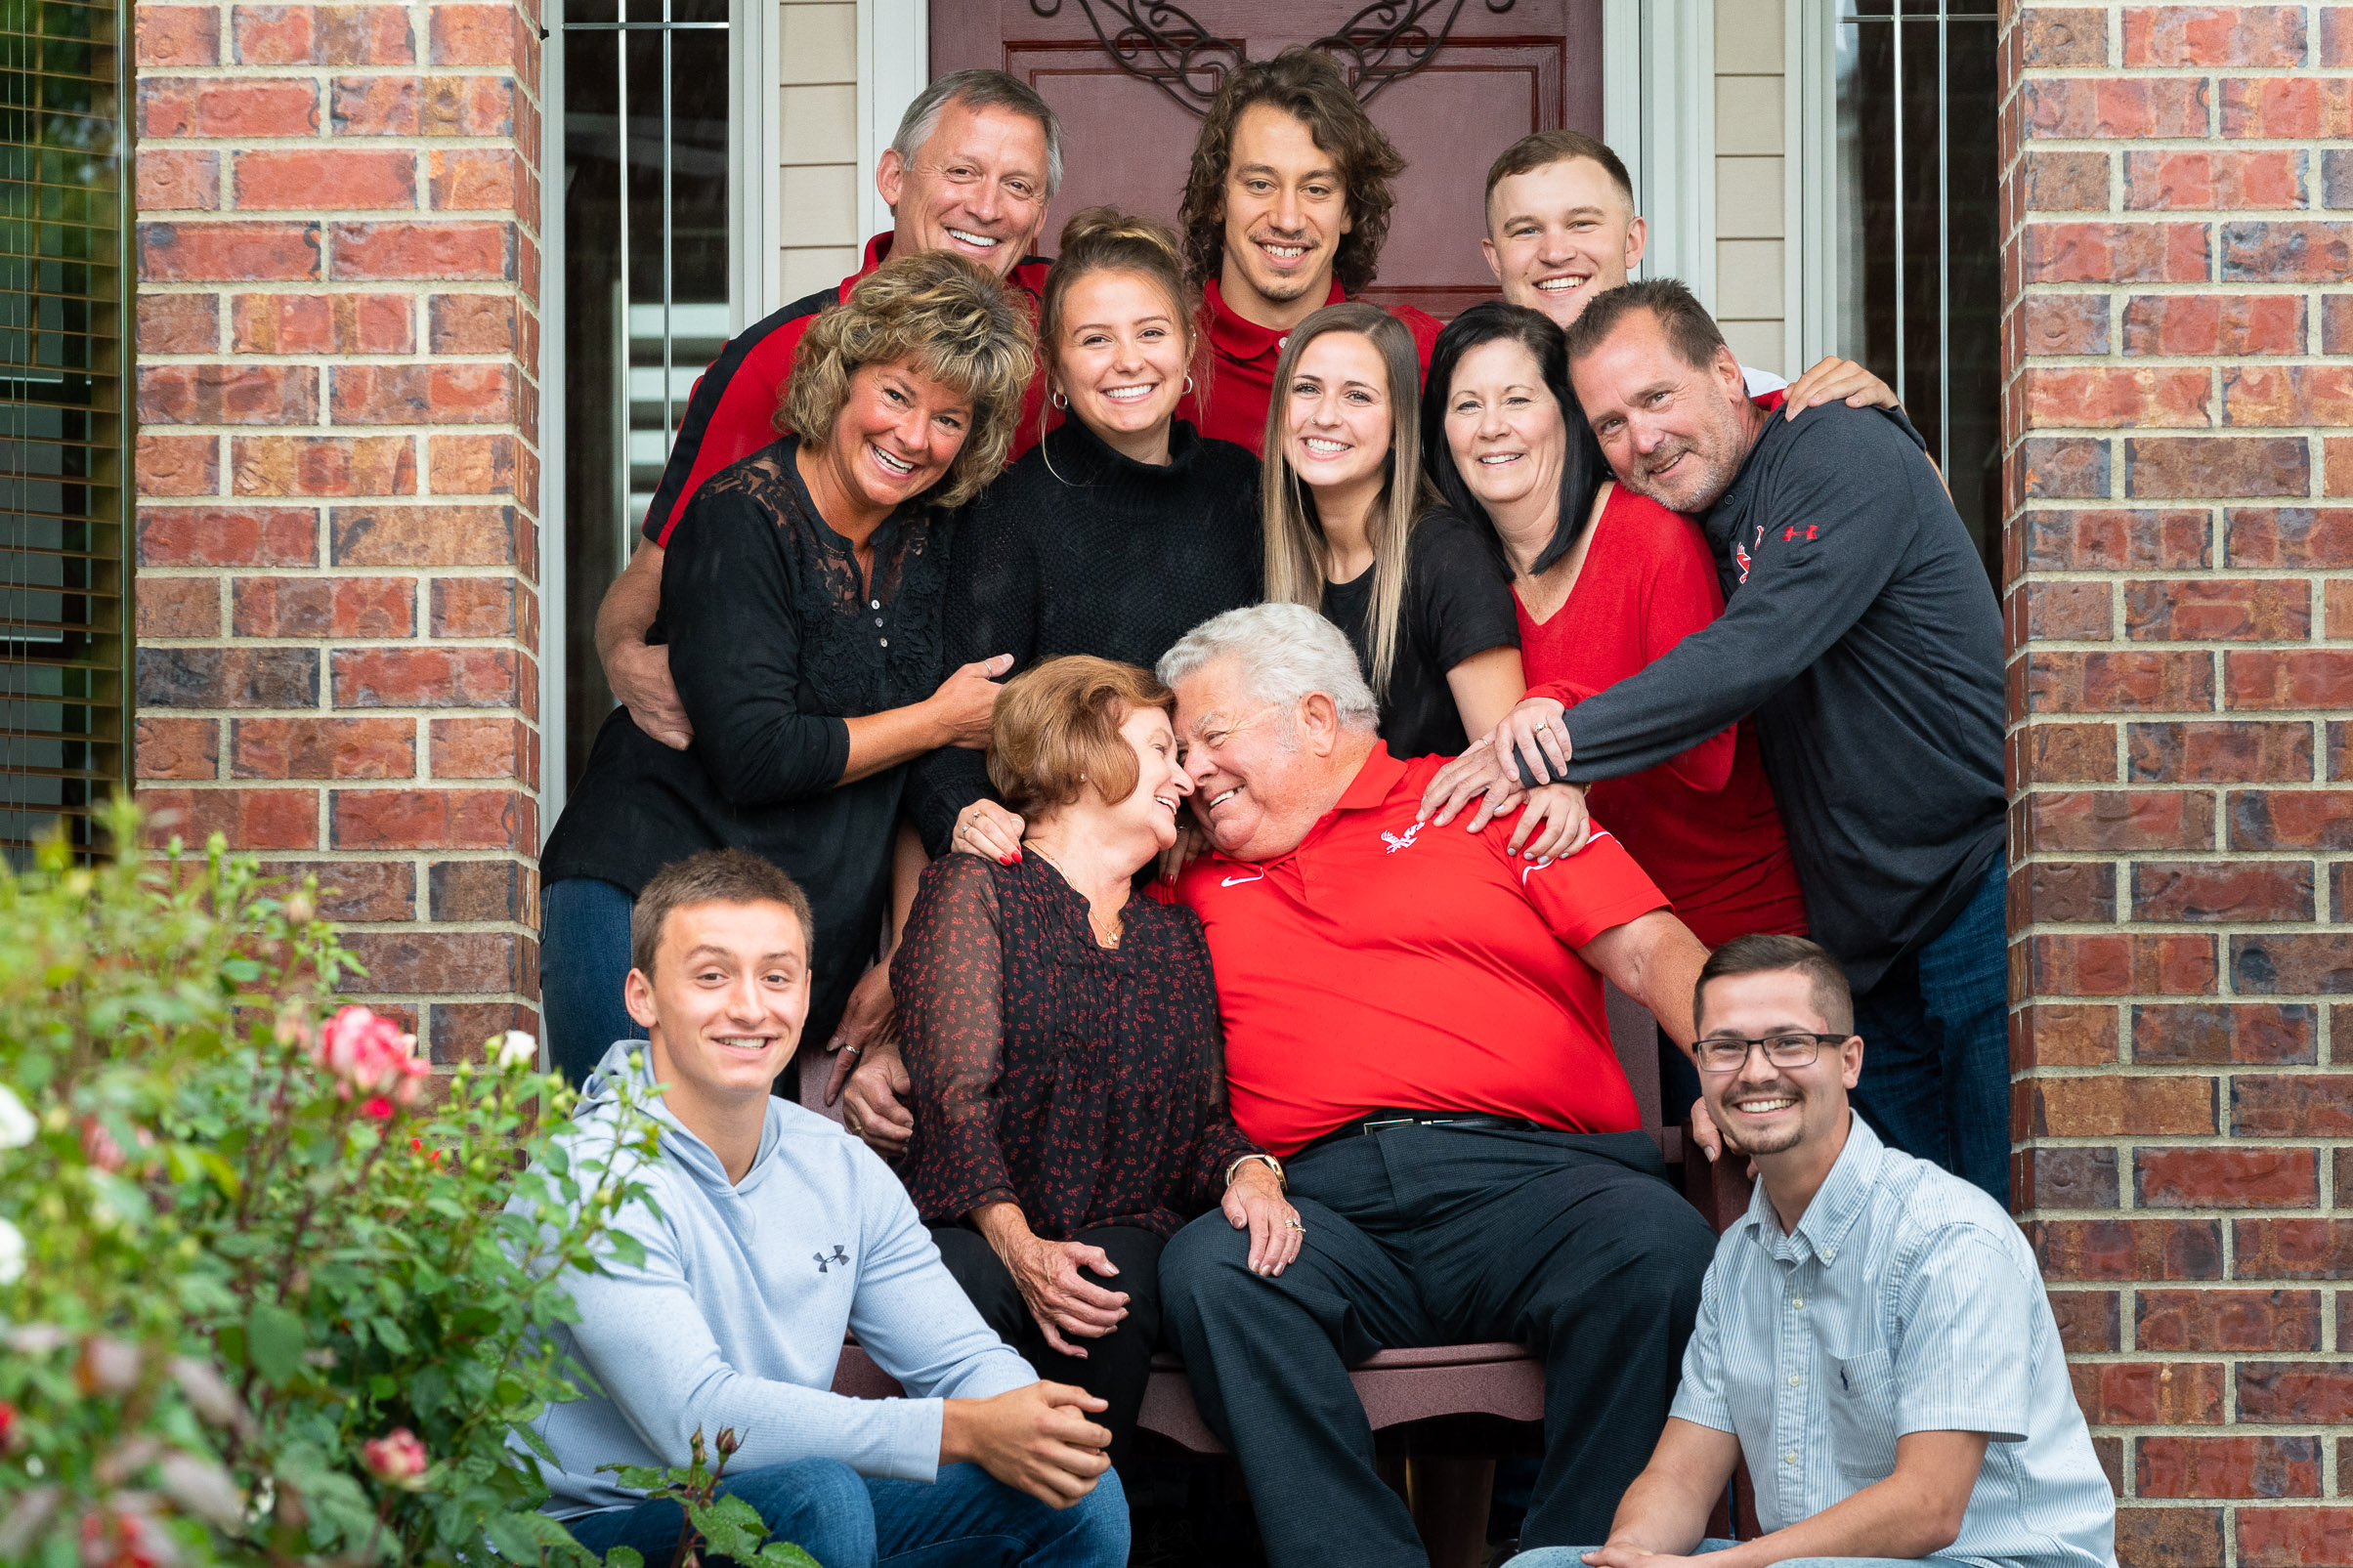 Photo showing professional family photo session with Franklin Photography Studio